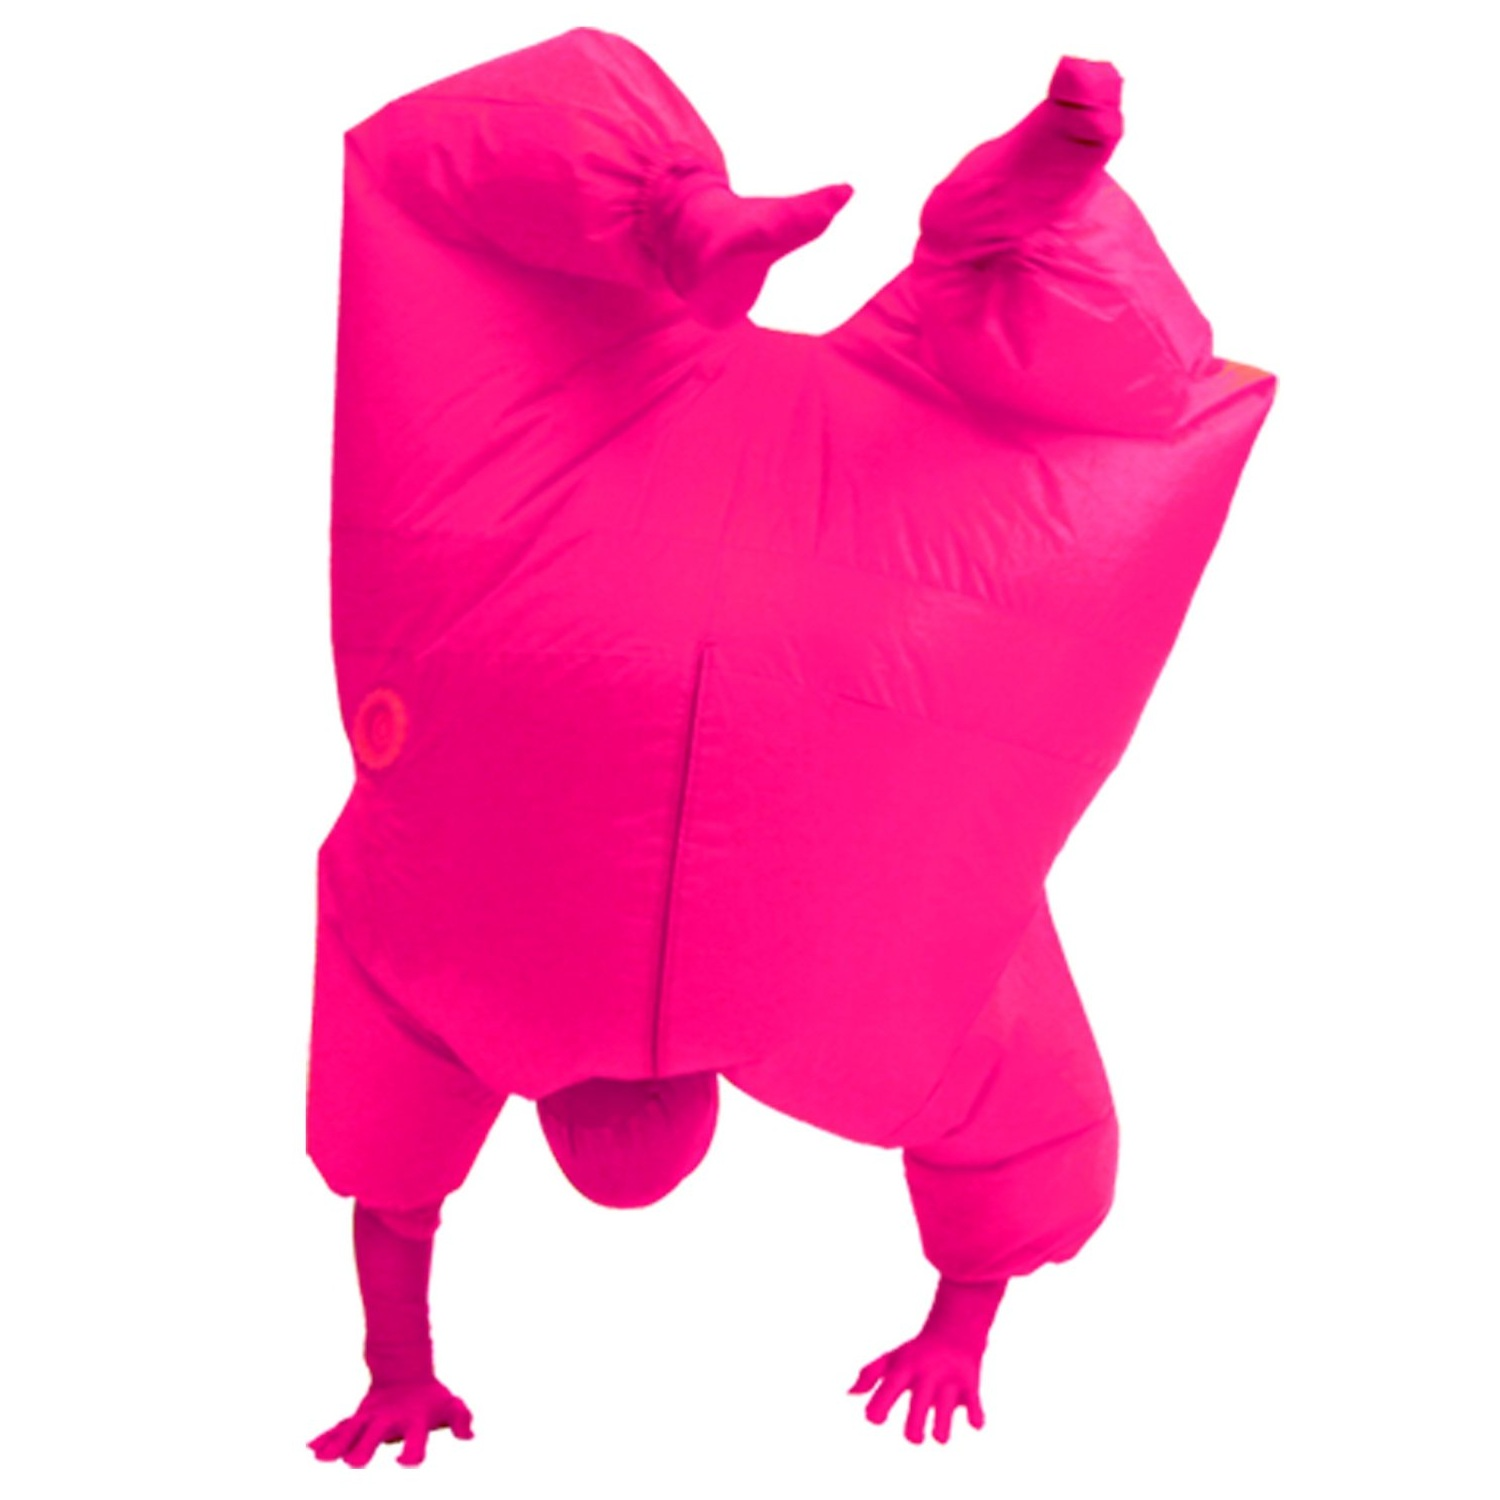 Inflatable Fat Suits 94